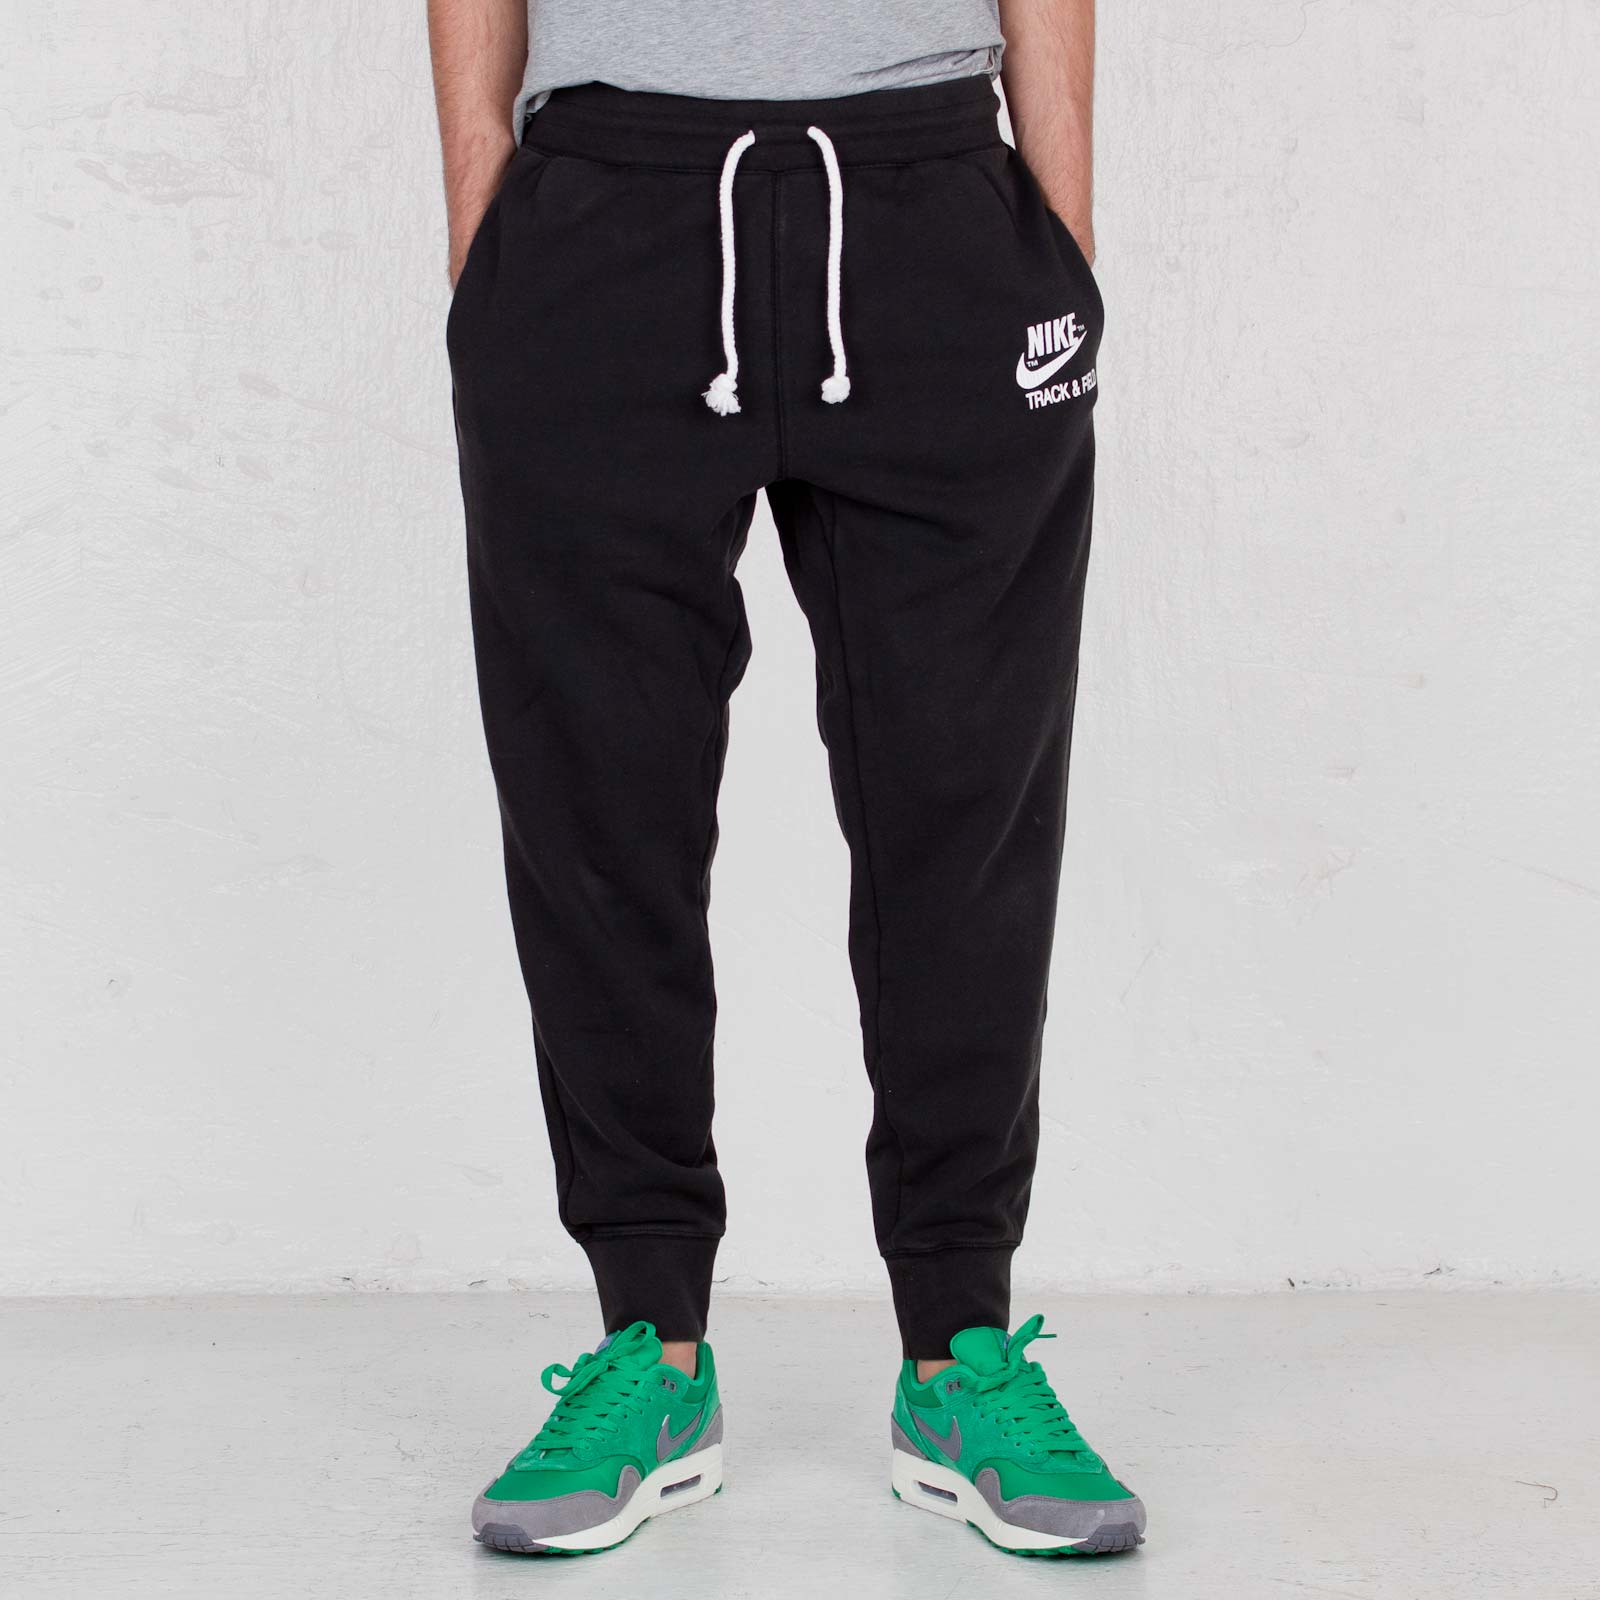 cheap for discount c21b9 e3473 Nike Track   Field G2 Graphic Sweatpants